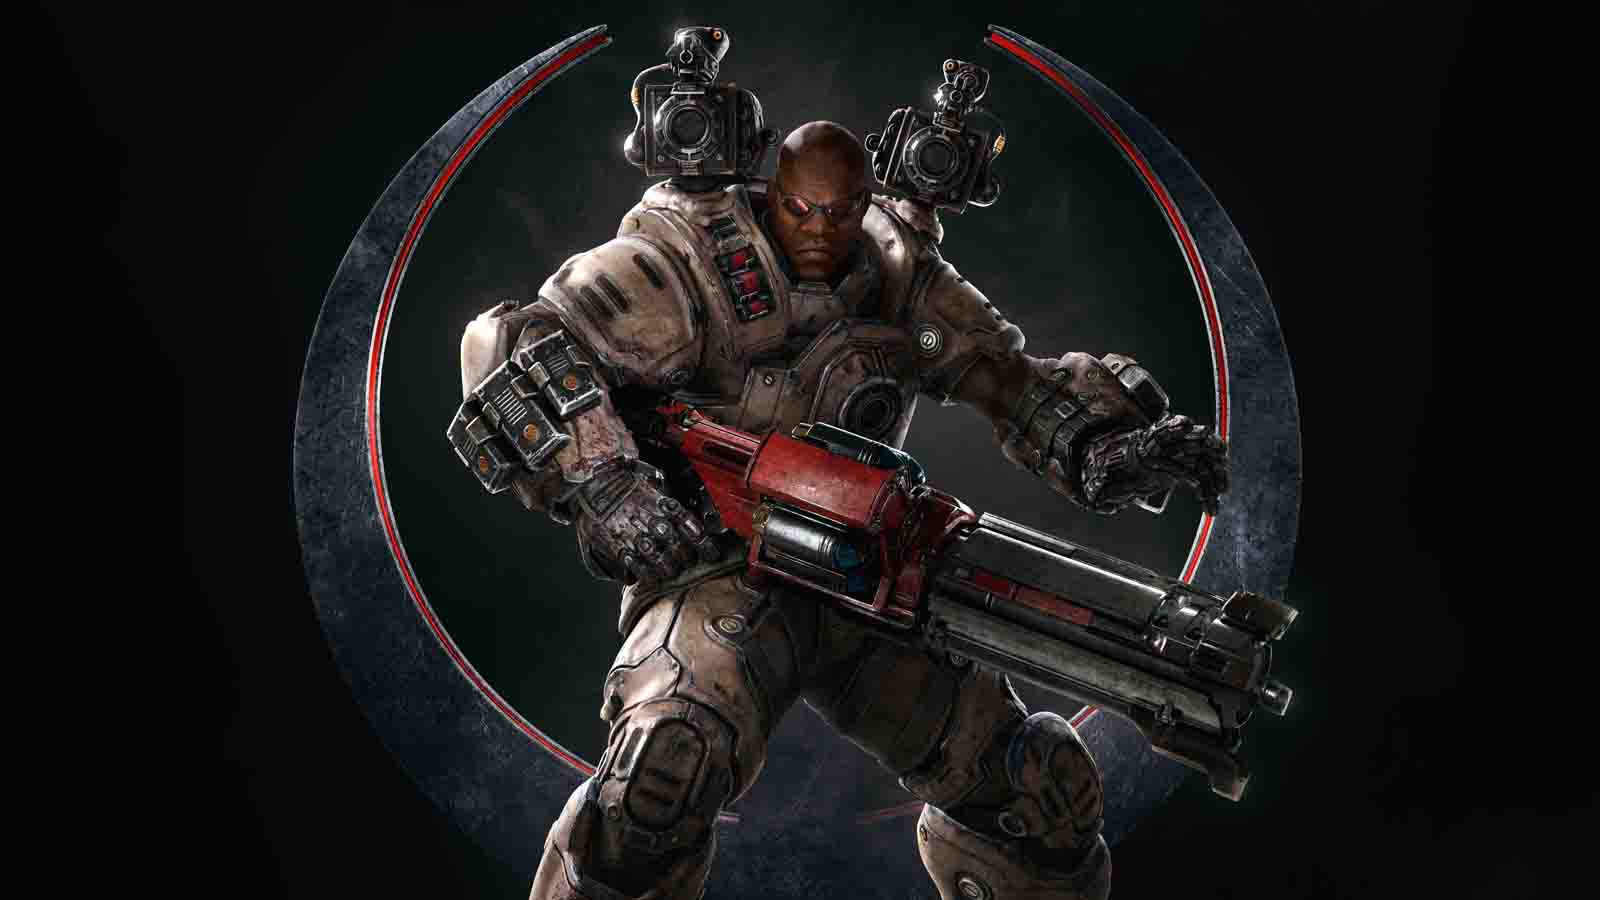 E3 2018 News: Quake Champions Free to Trial